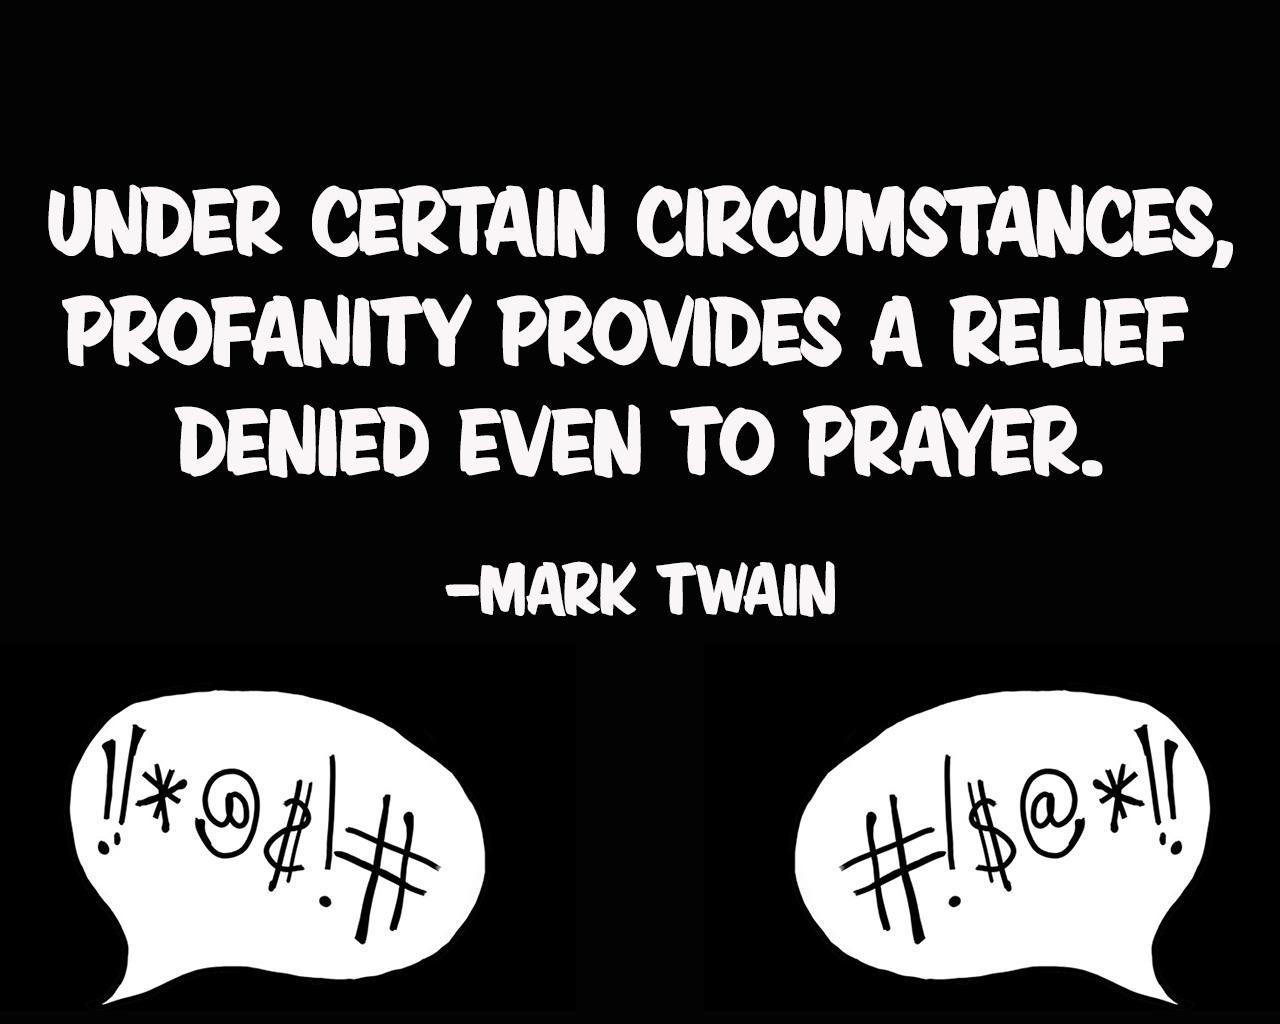 Under certaion circumstances, profanity provides a relief denied even to prayer. - Mark Twain